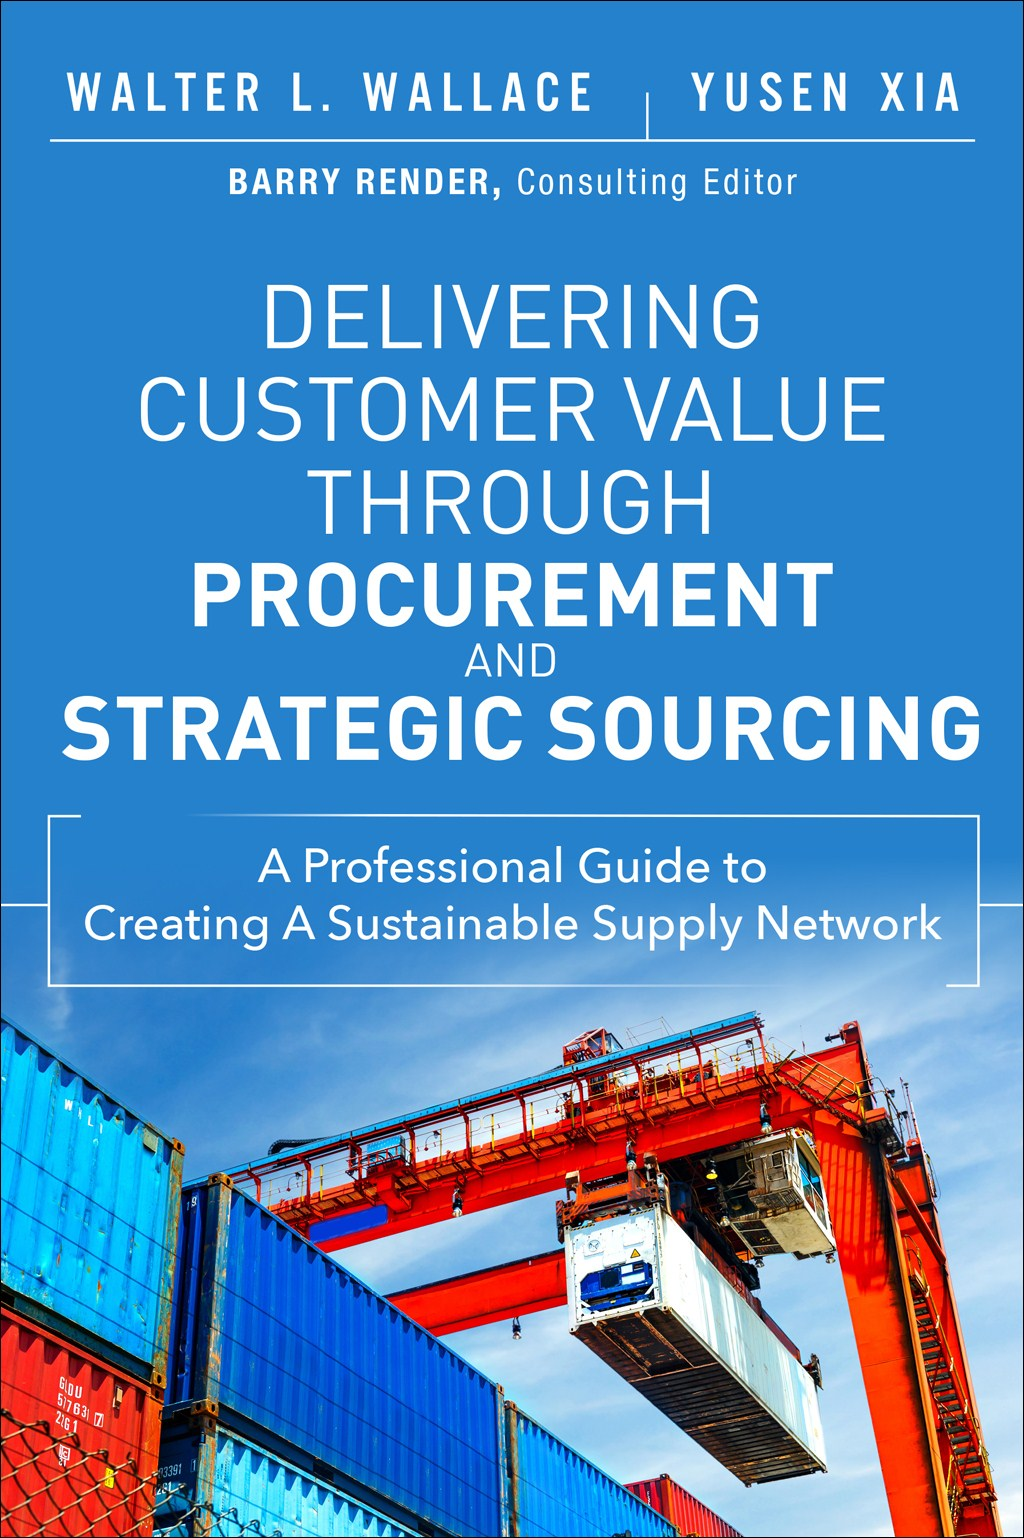 Delivering Customer Value through Procurement and Strategic Sourcing: A Professional Guide to Creating A Sustainable Supply Network